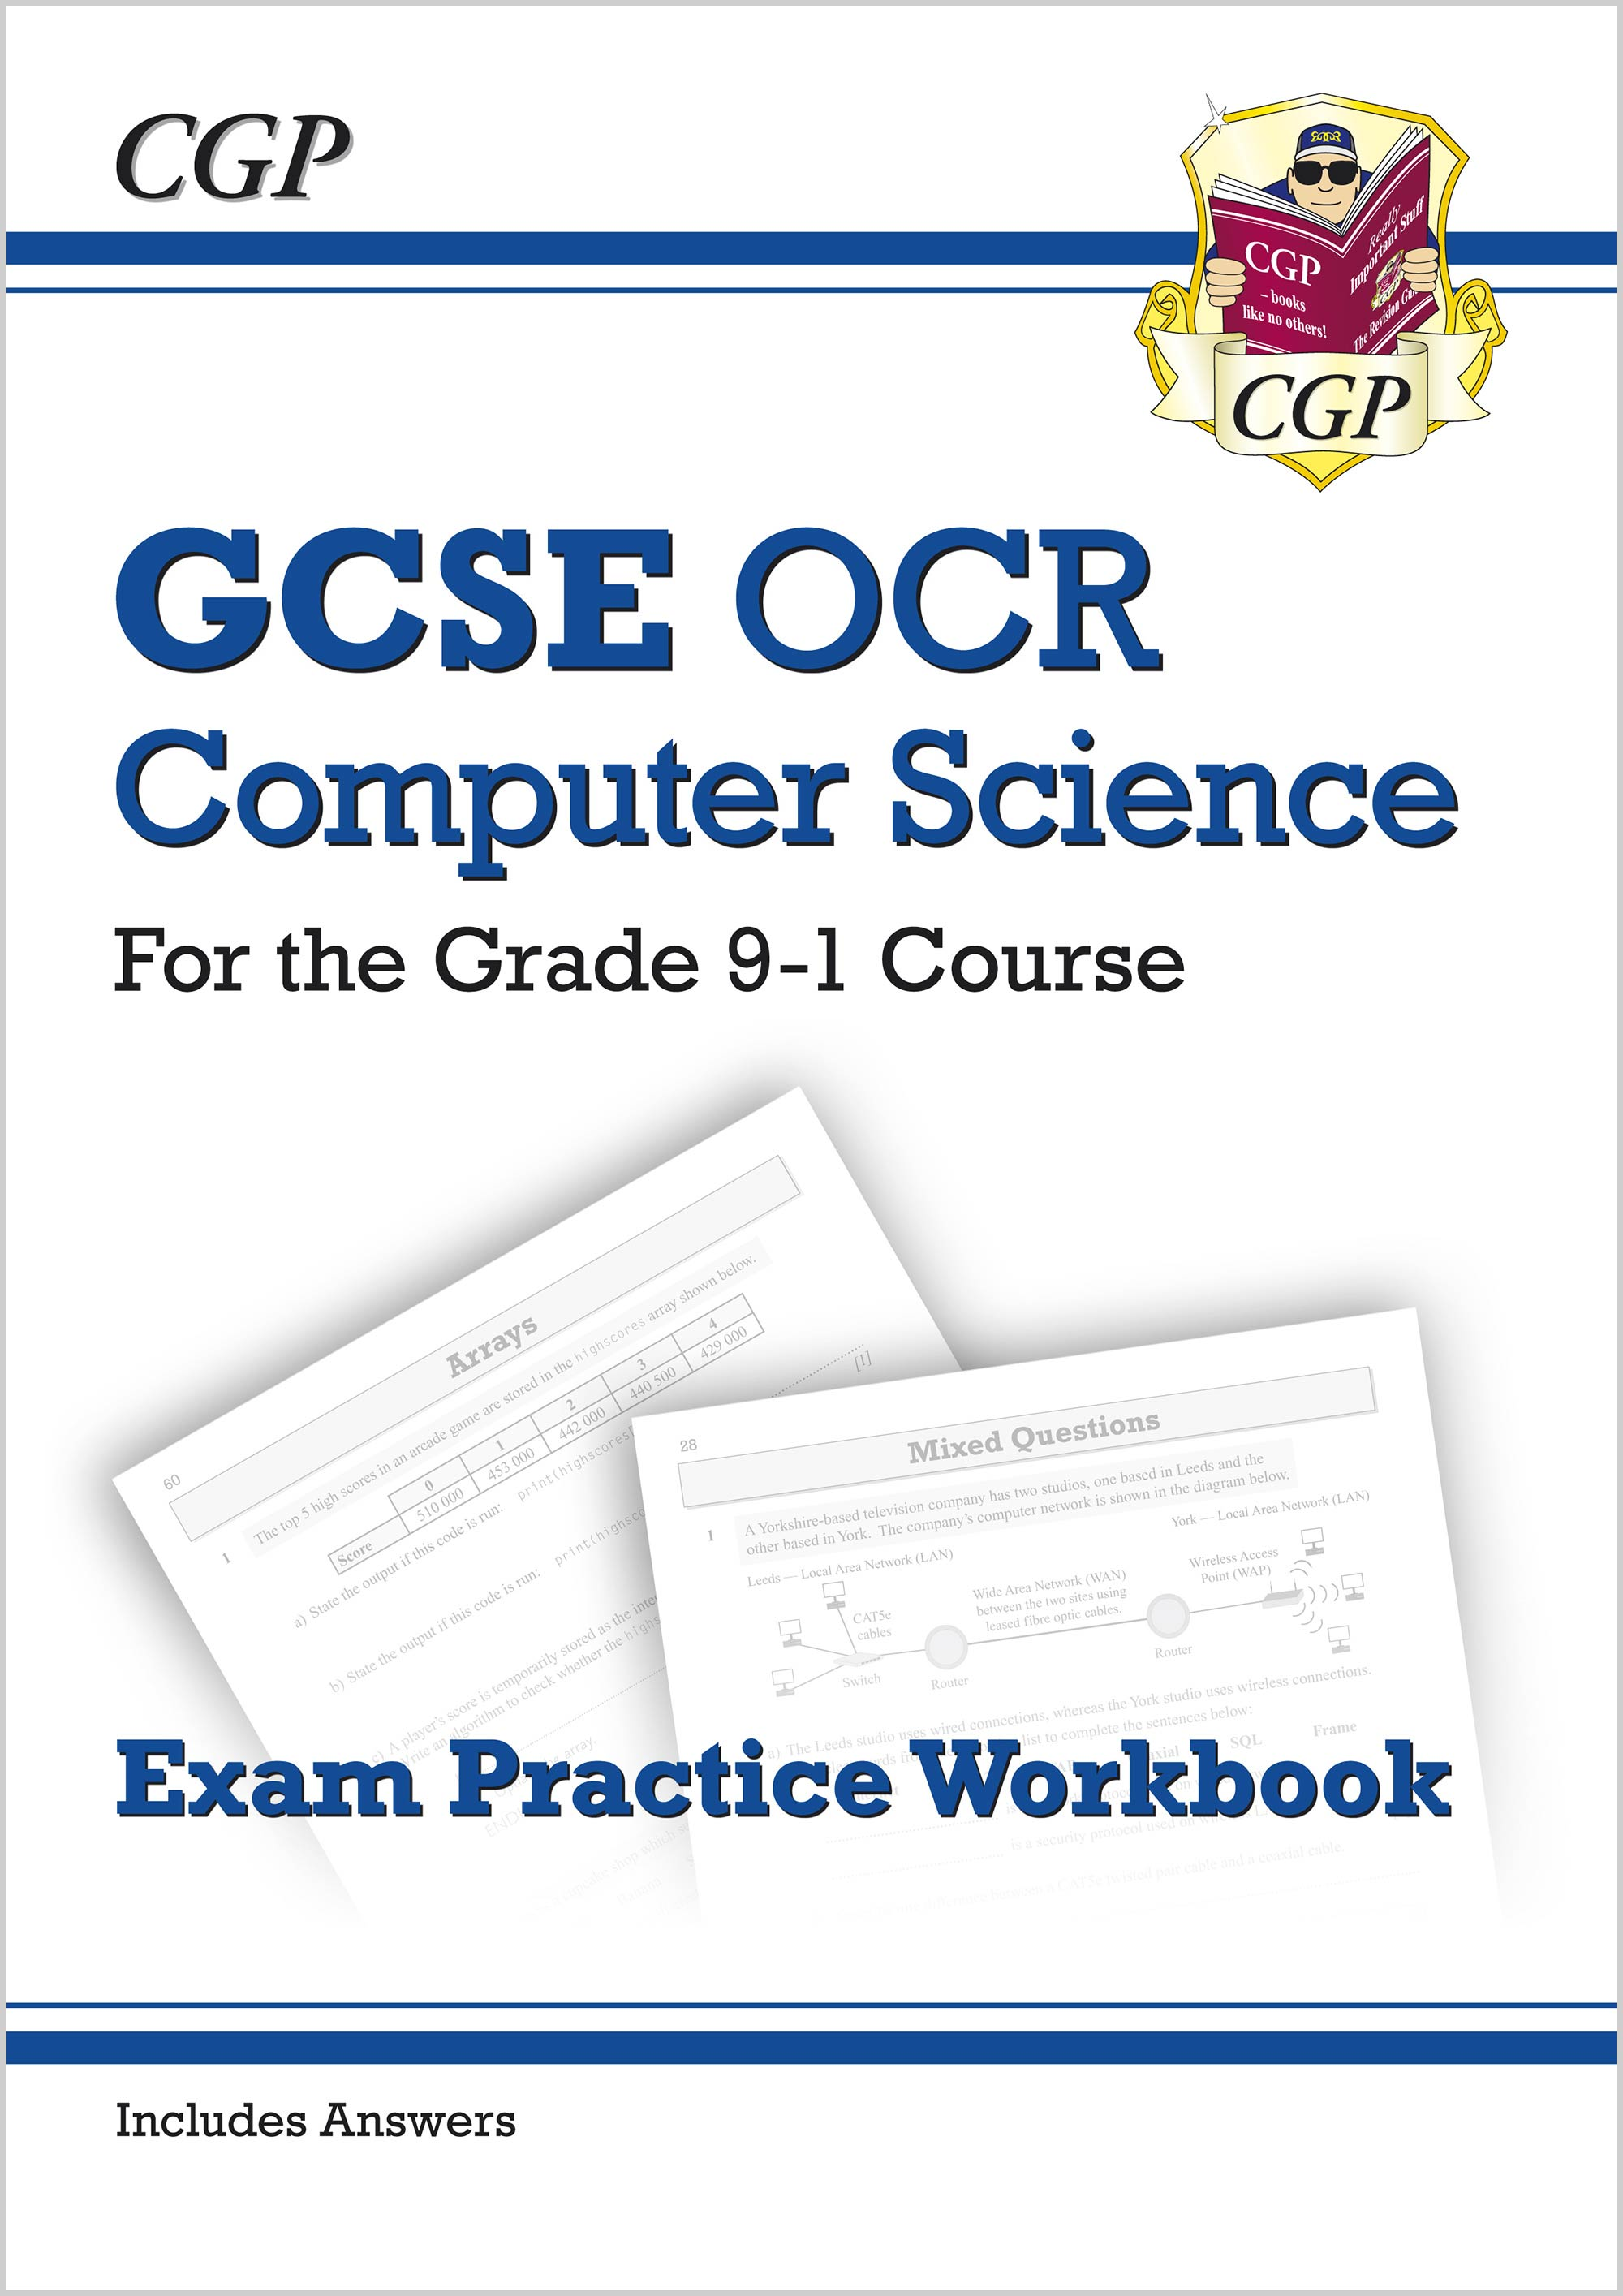 COQ41 - New GCSE Computer Science OCR Exam Practice Workbook - for the Grade 9-1 Course (includes An